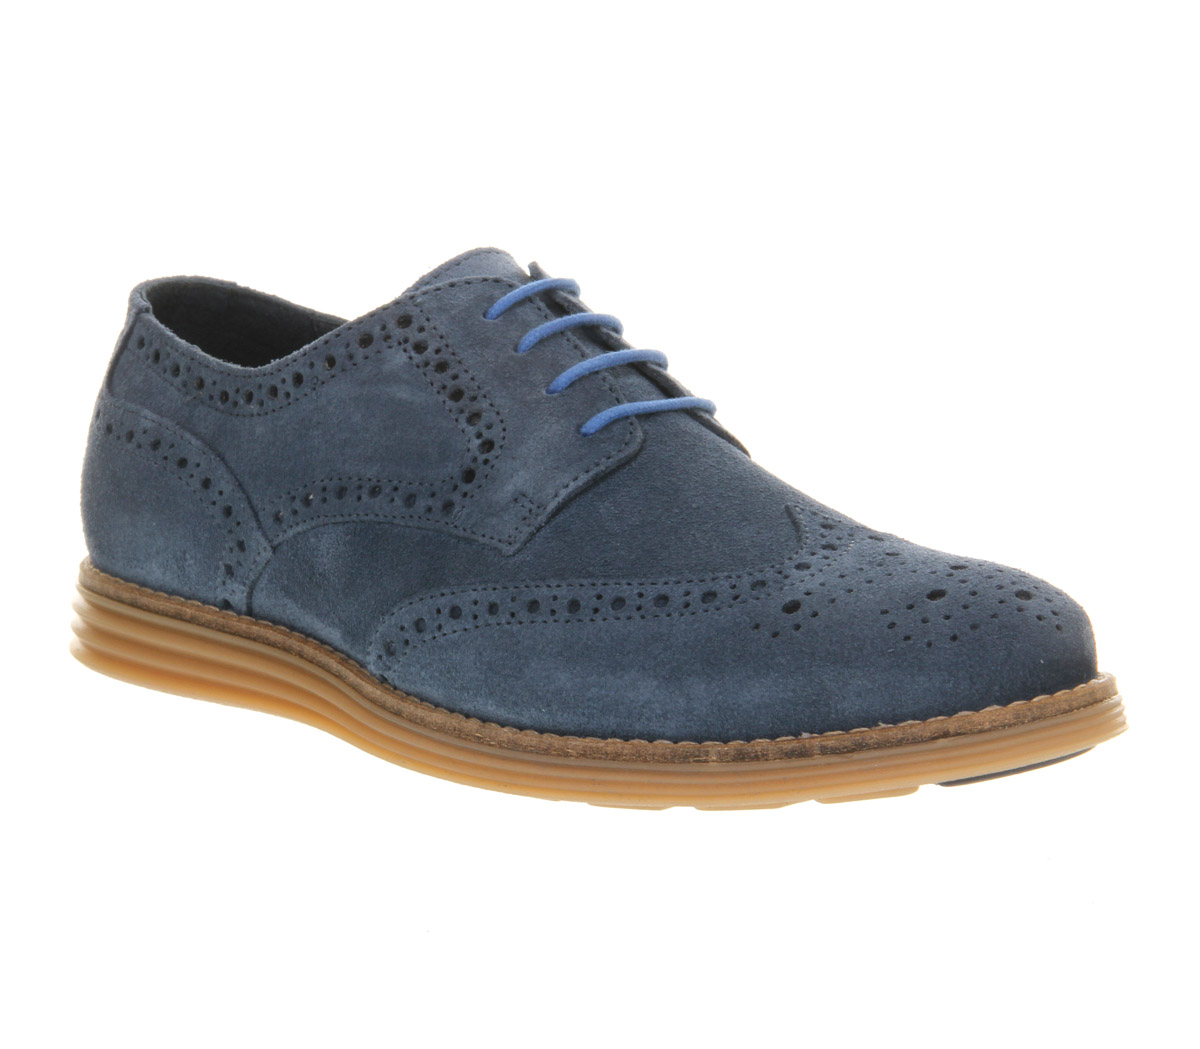 From classic brogue shoes finished in leather and suede to smart brogue boots or brown brogue styles, you'll be spoiled for choice. Choose your men's formal shoes from the likes of Ted Baker, Base London and Ikon and order by 10pm* for Next Day UK Delivery.